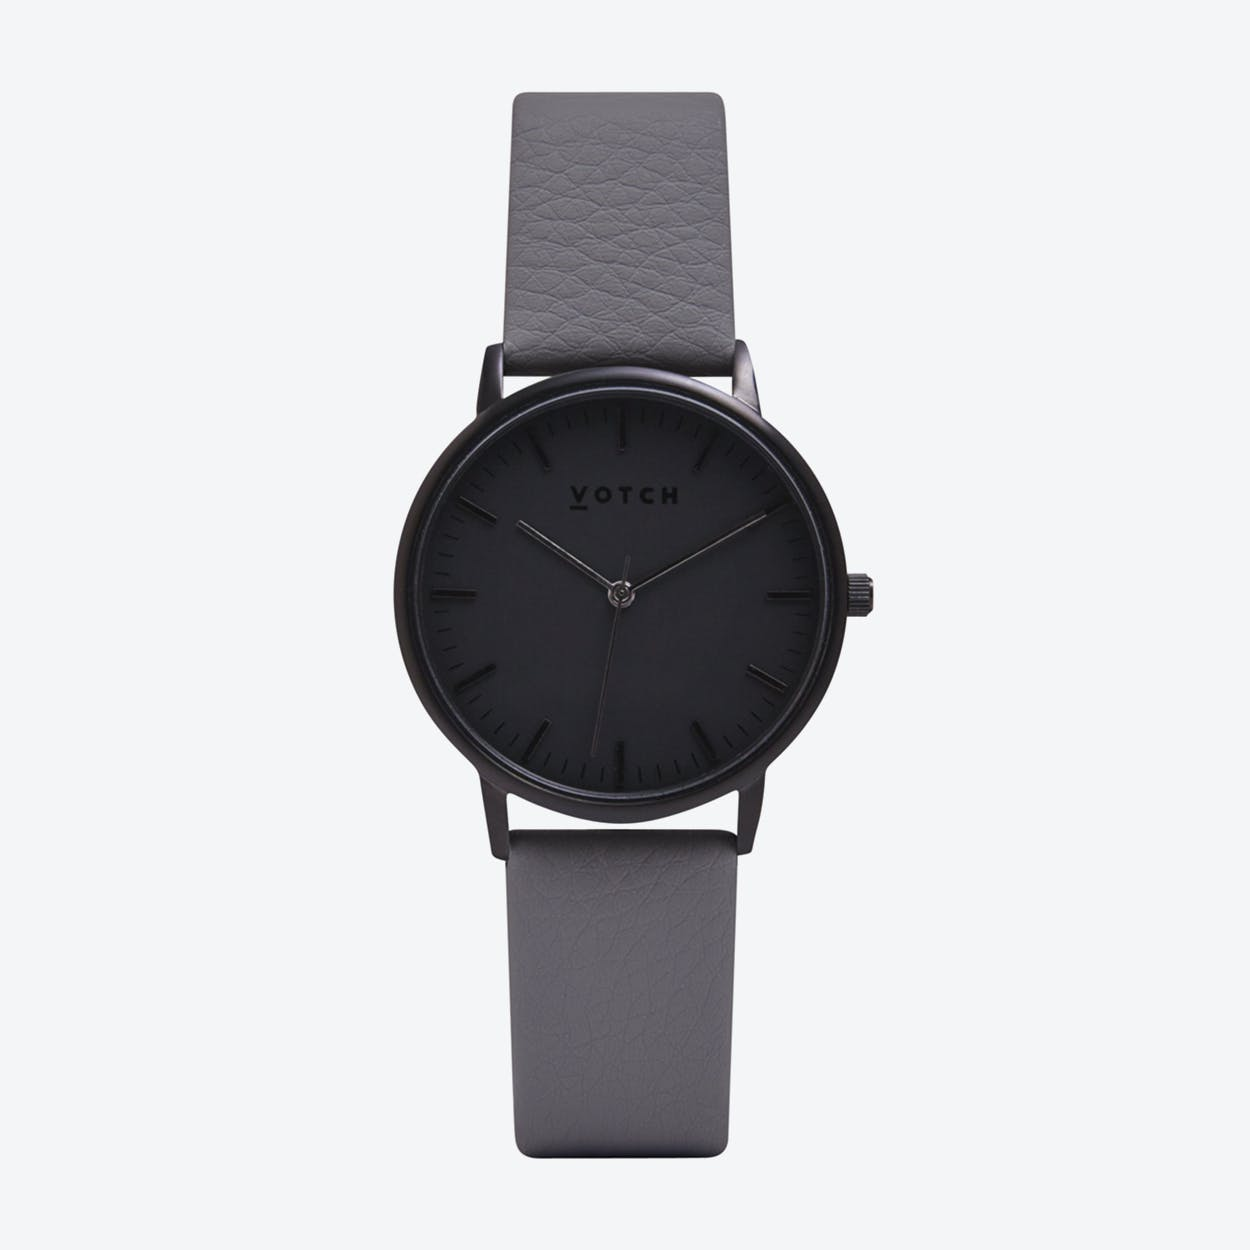 Intense Classic Watch in Black with Black Face and Slate Grey Vegan Leather Strap, 36mm